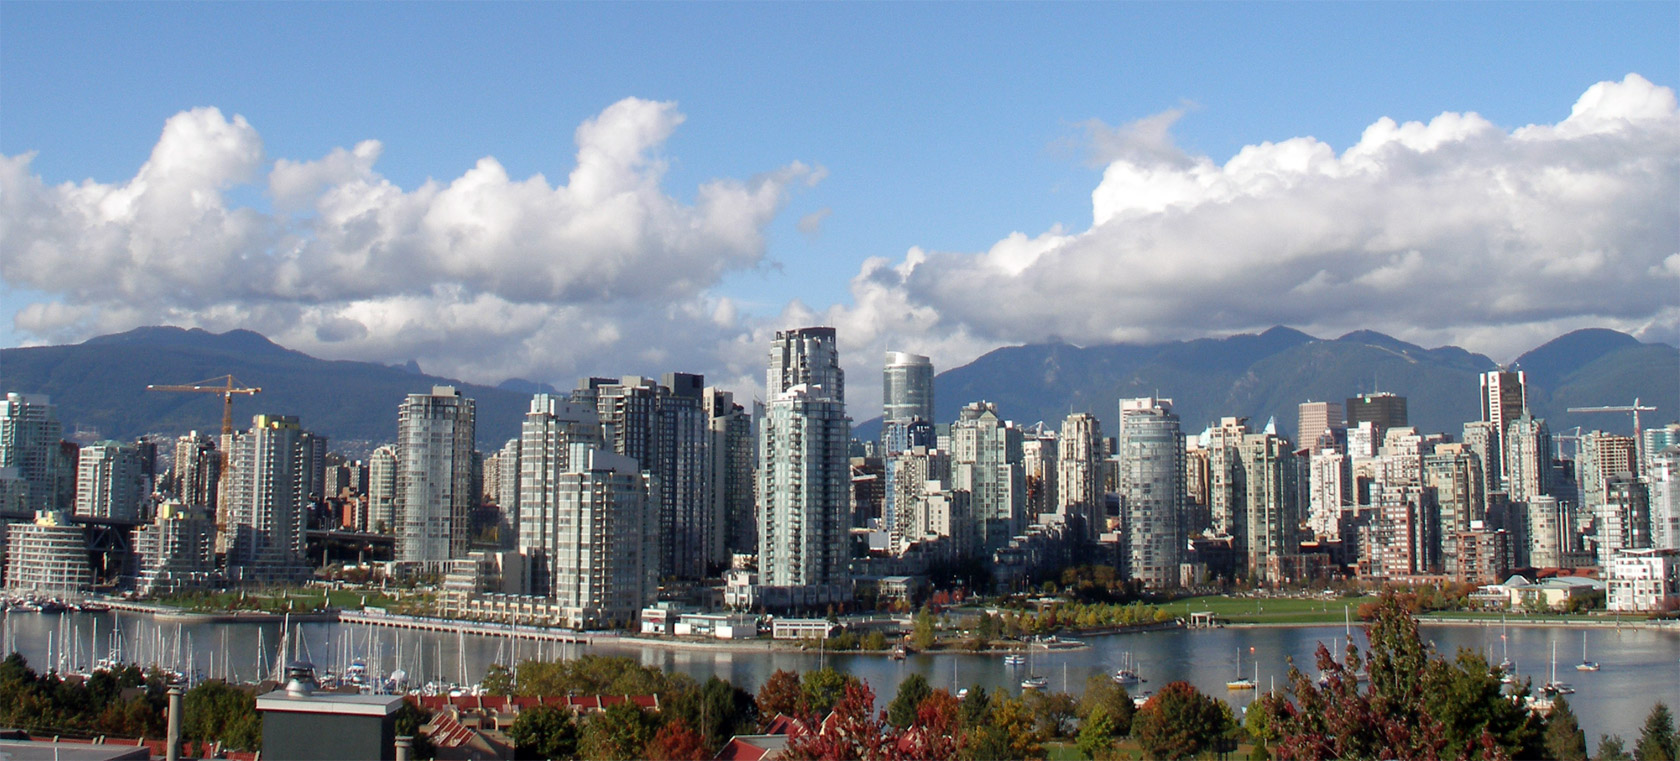 Visit One Of The Most Beautiful Cities In The World Vancouver British Columbia Get A First Life